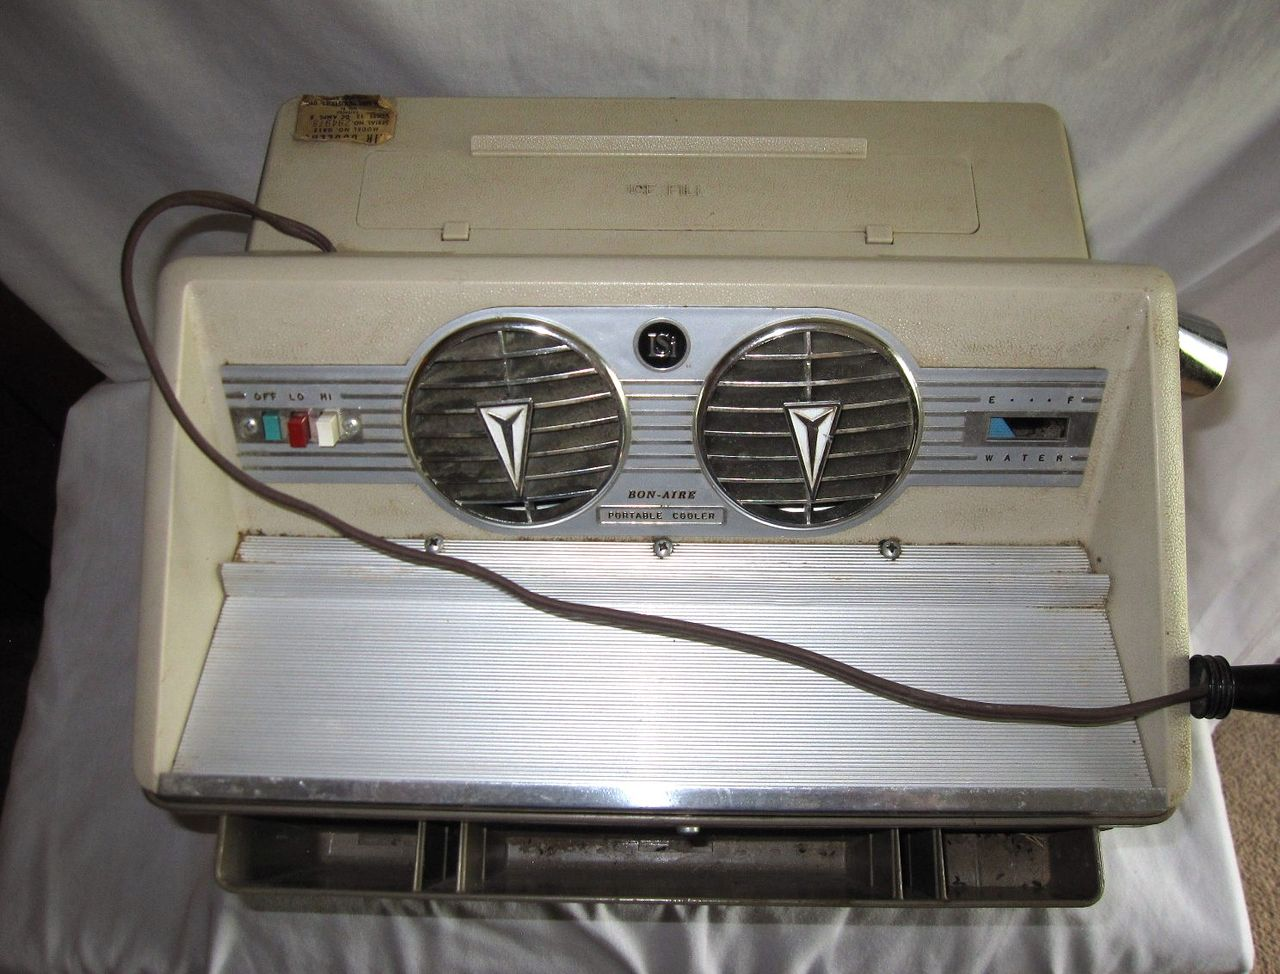 Charge Air Cooler Ice Box : Vintage bon aire car swamp air cooler ice box fan cooling